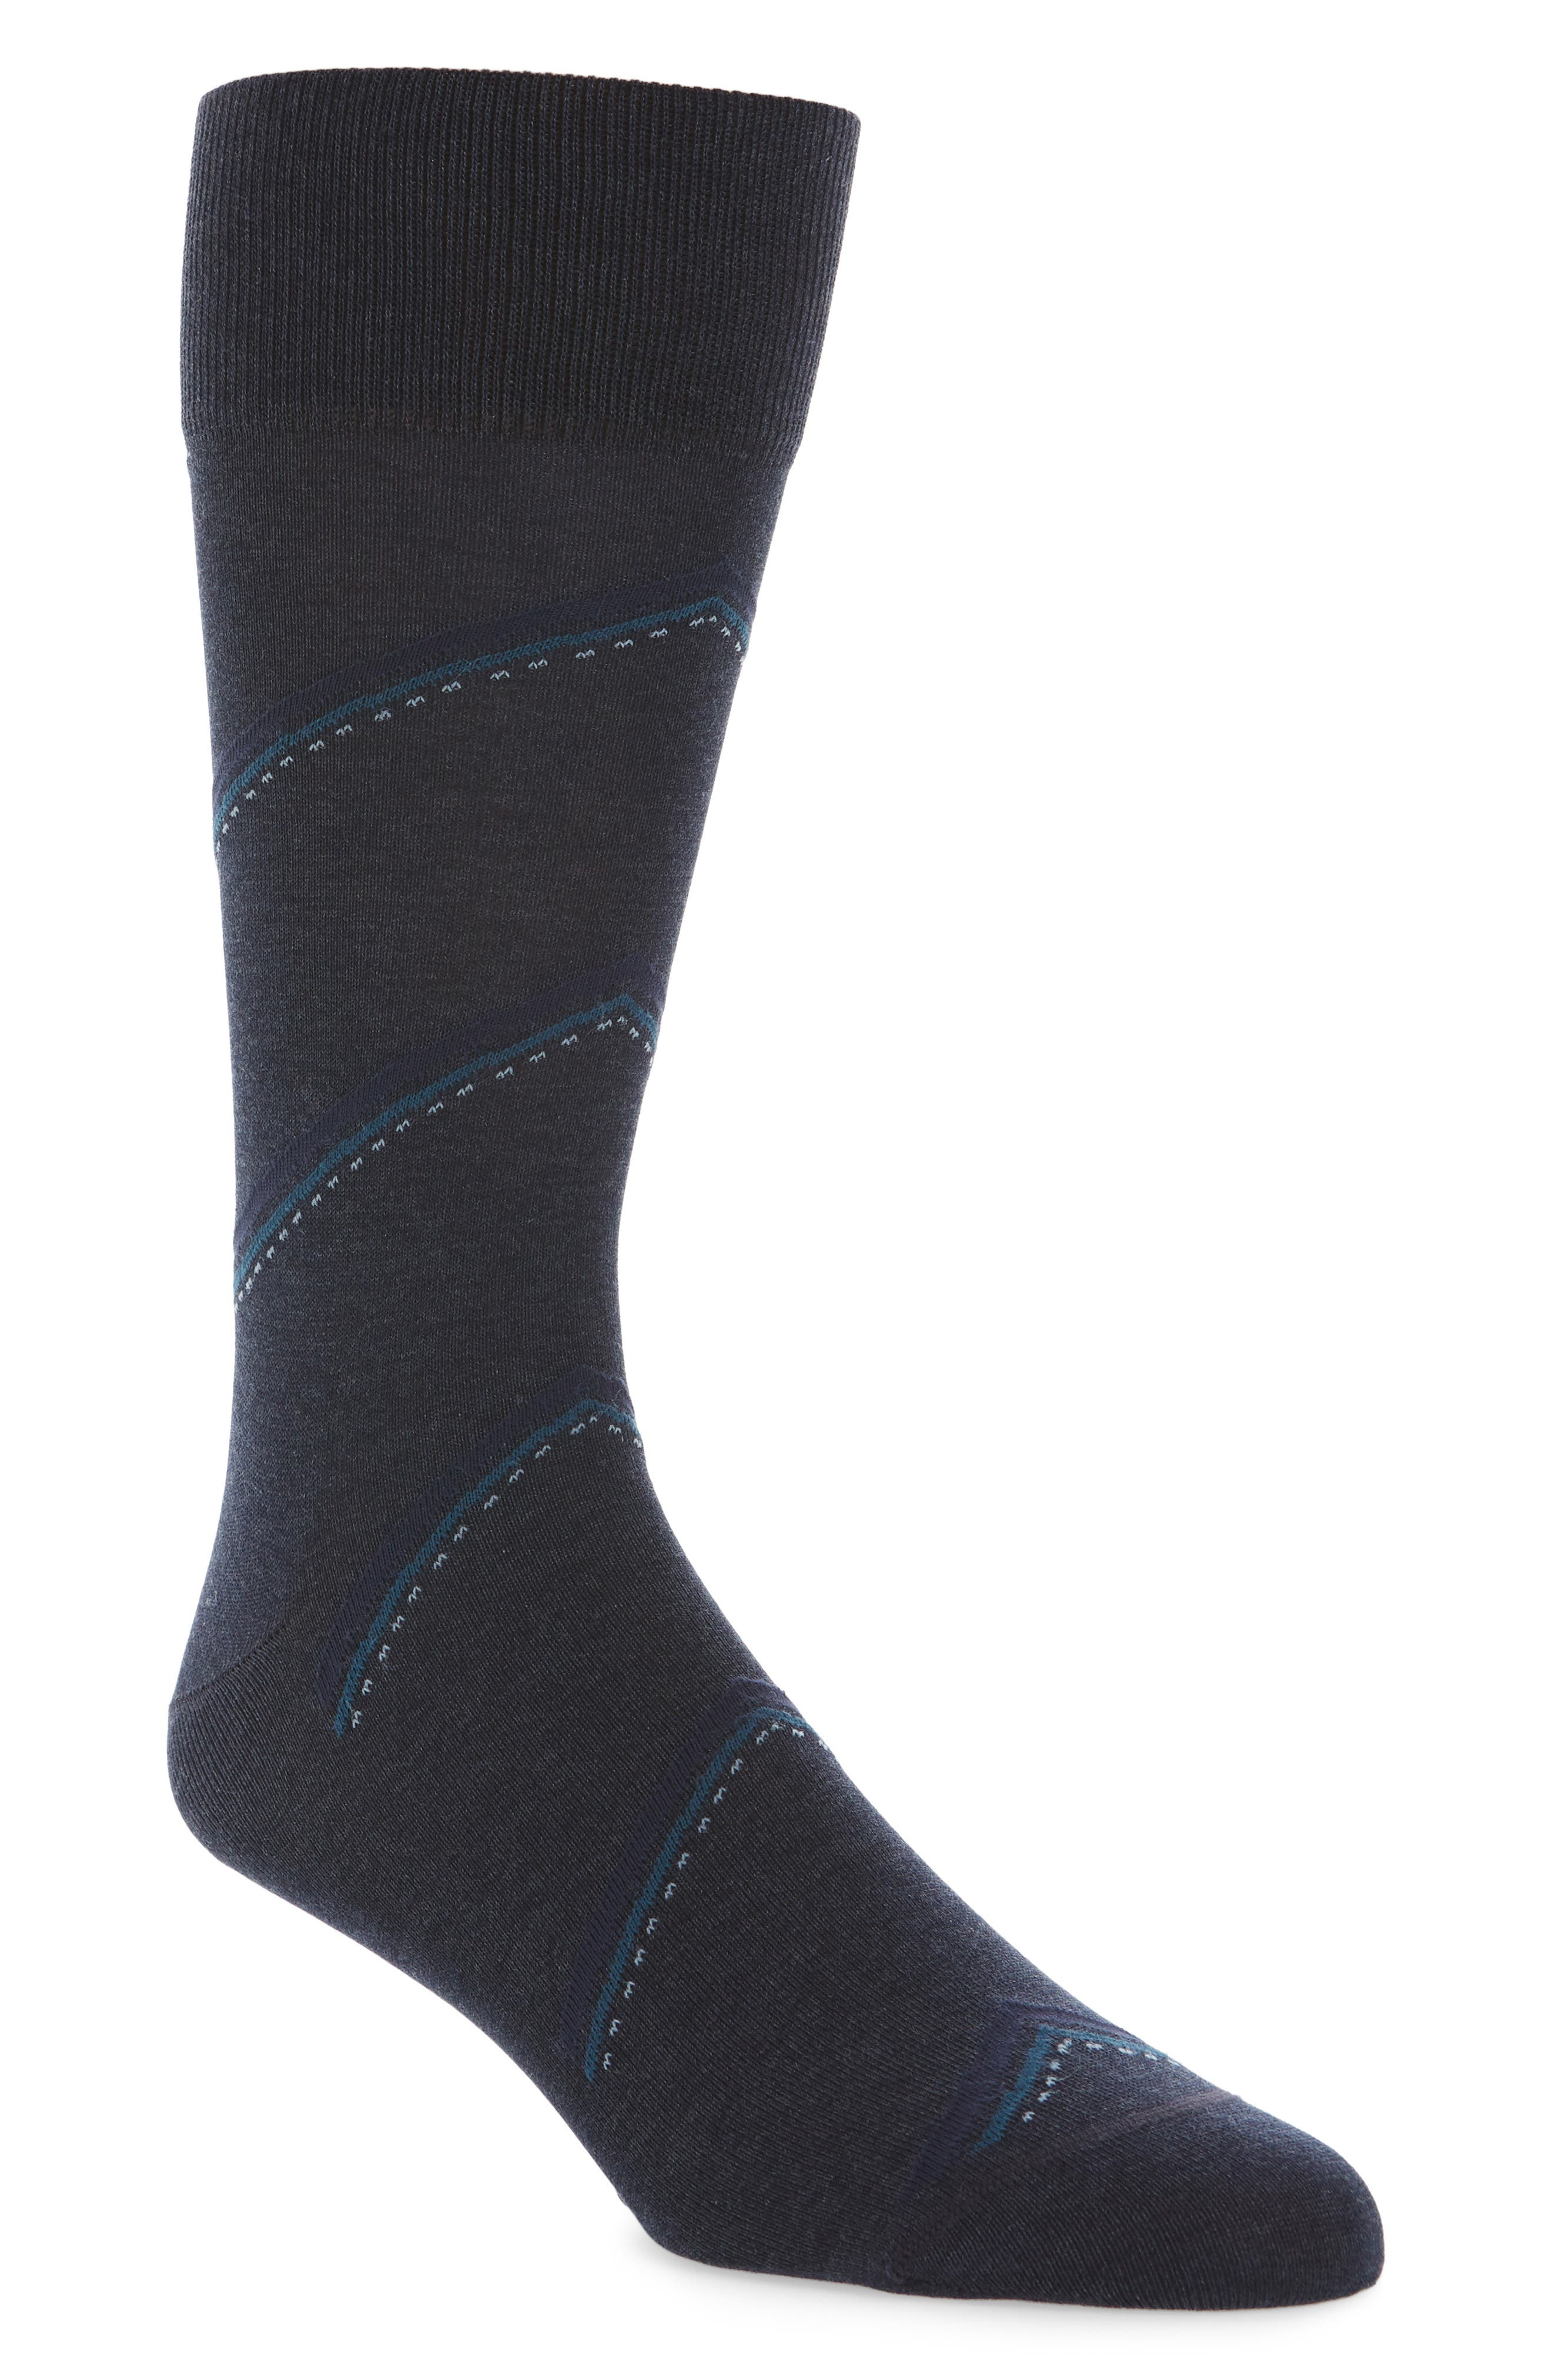 Bias Stripe Socks,                         Main,                         color, Navy Heather/ Teal